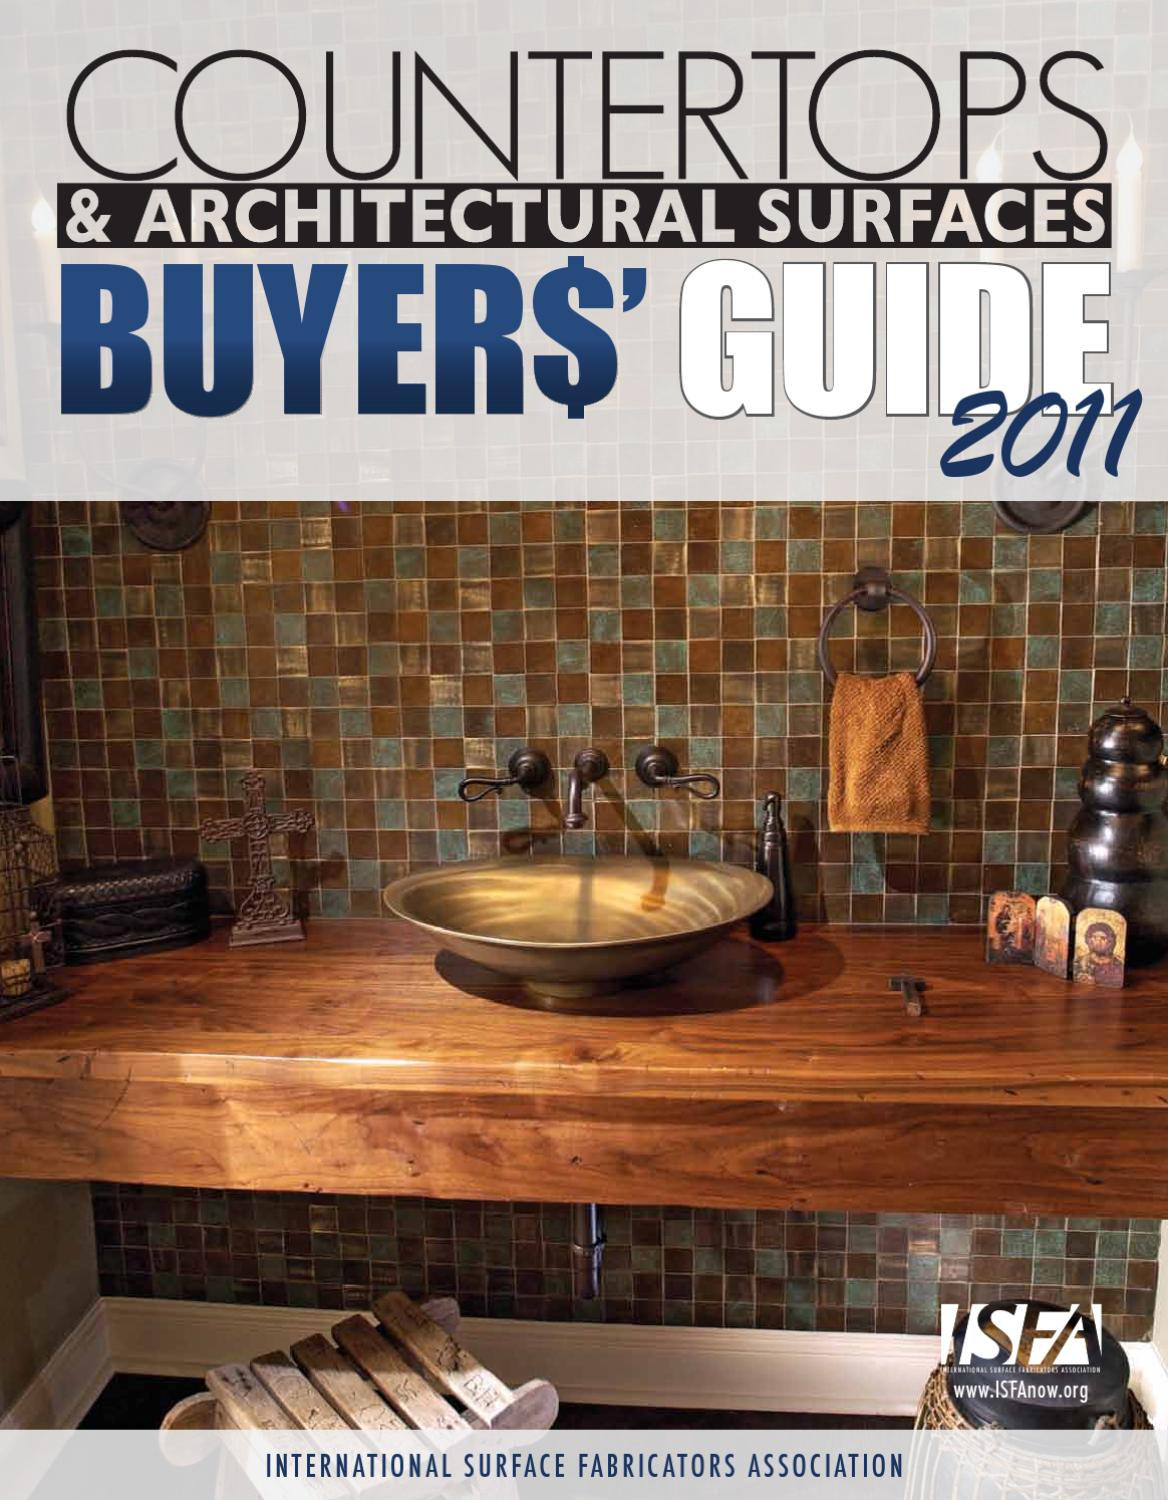 Isfa Countertops Architectural Surfaces Buyers Guide 2011 By Isfa Issuu